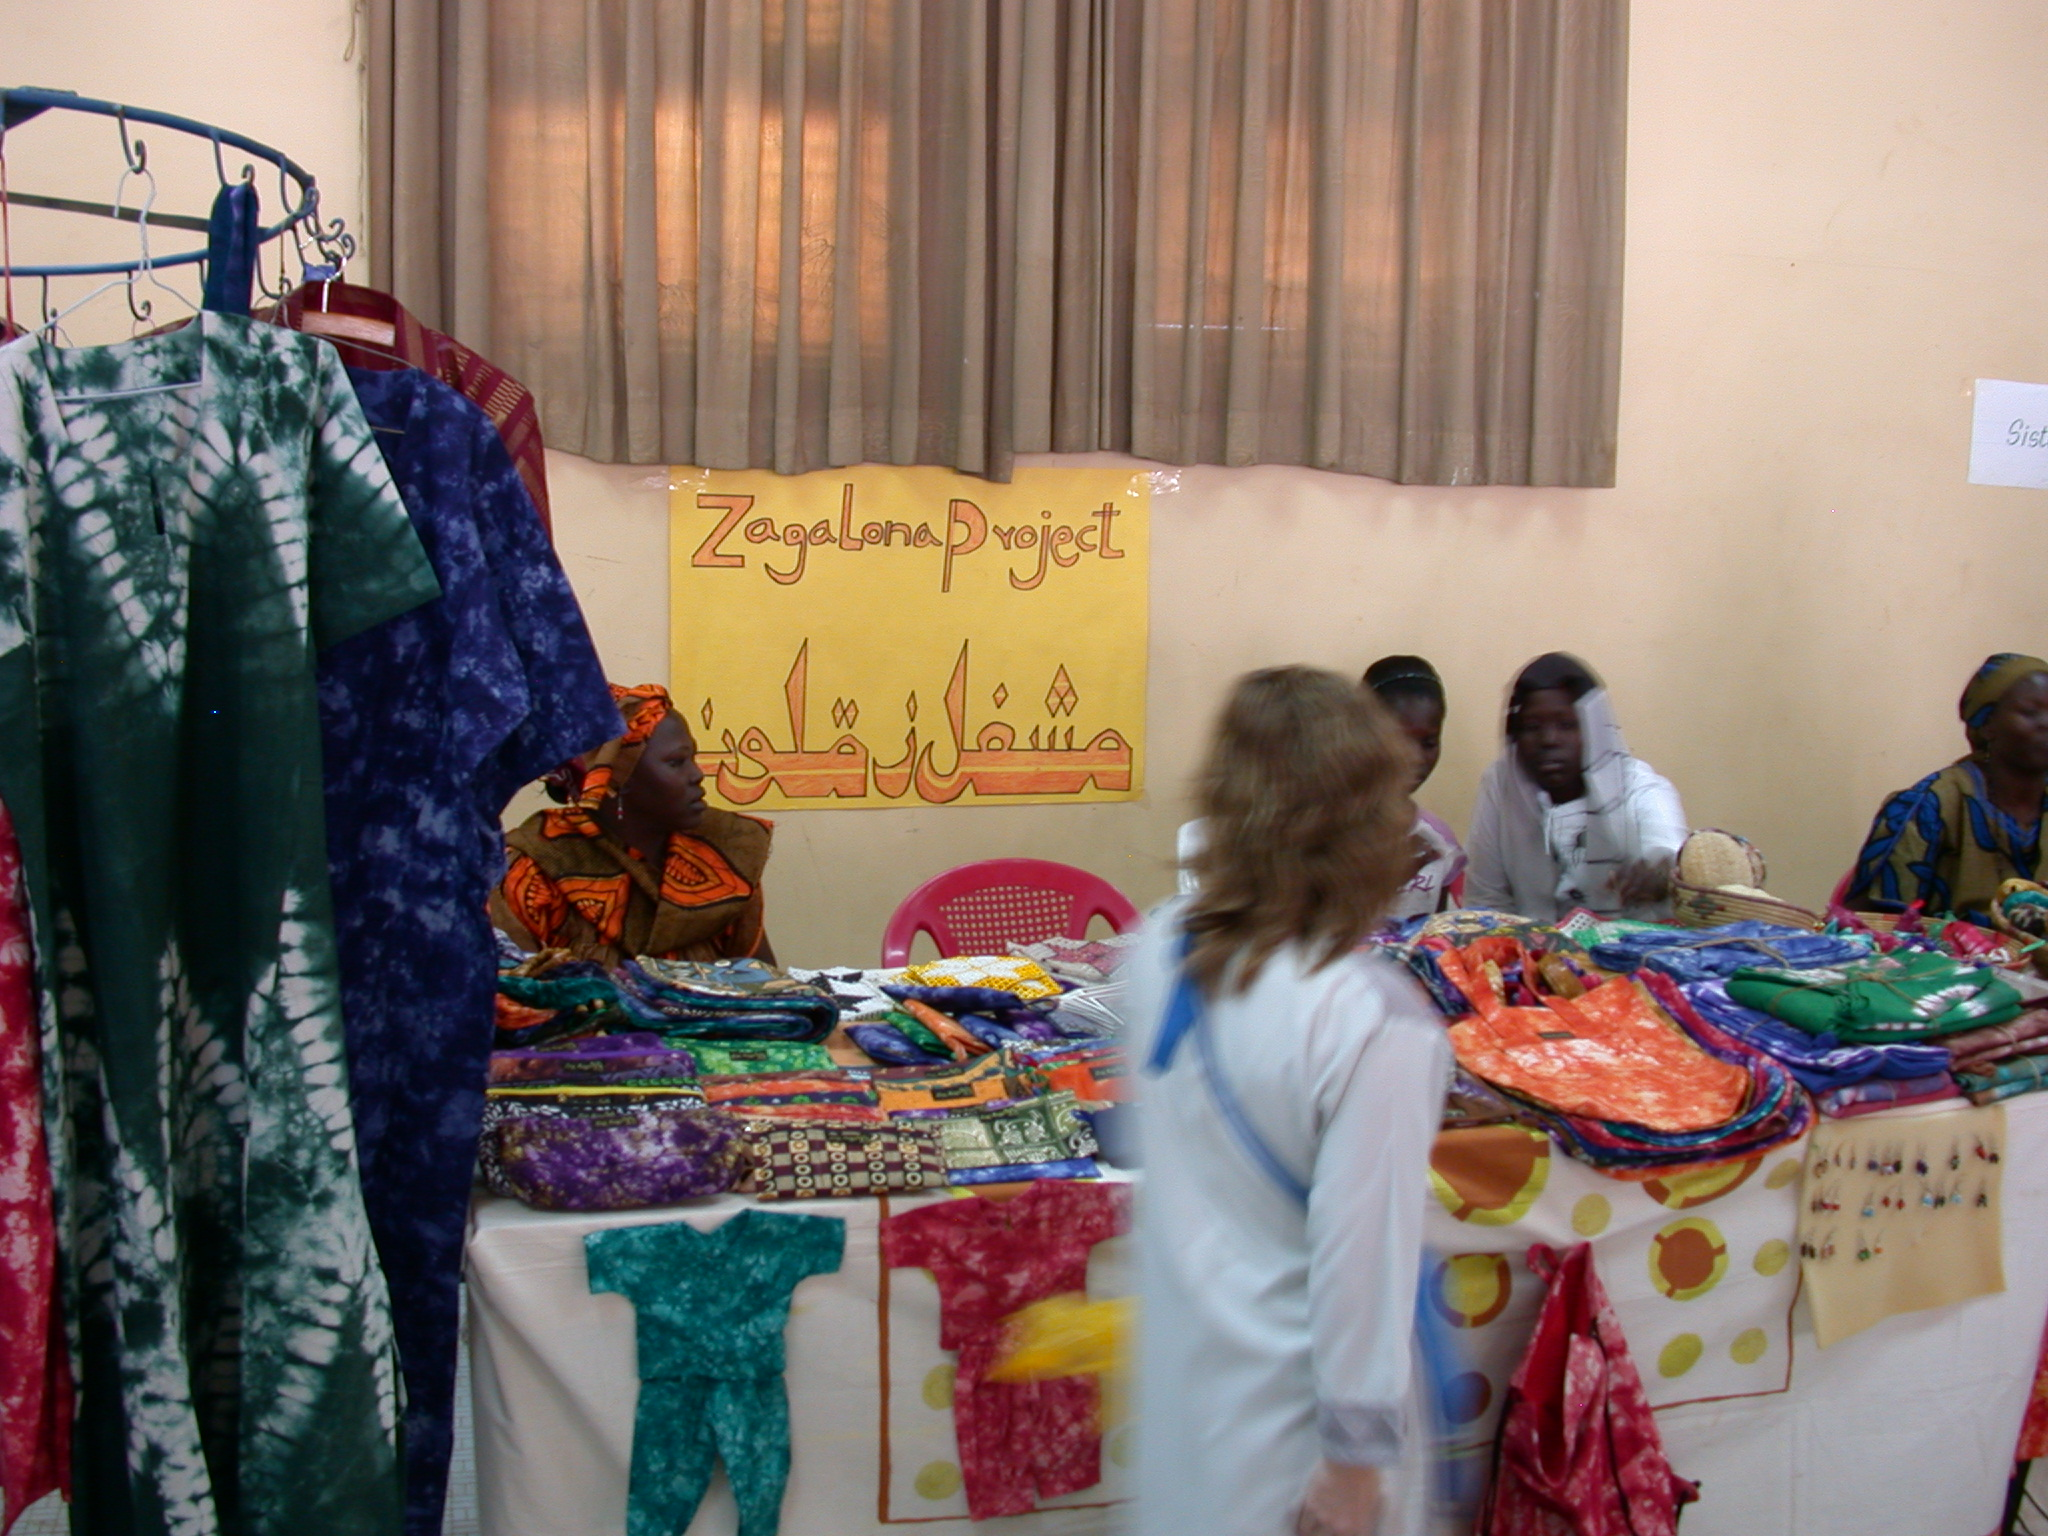 Zagalona Project Where I Bought Doll, International Charity Fair, Khartoum, Sudan